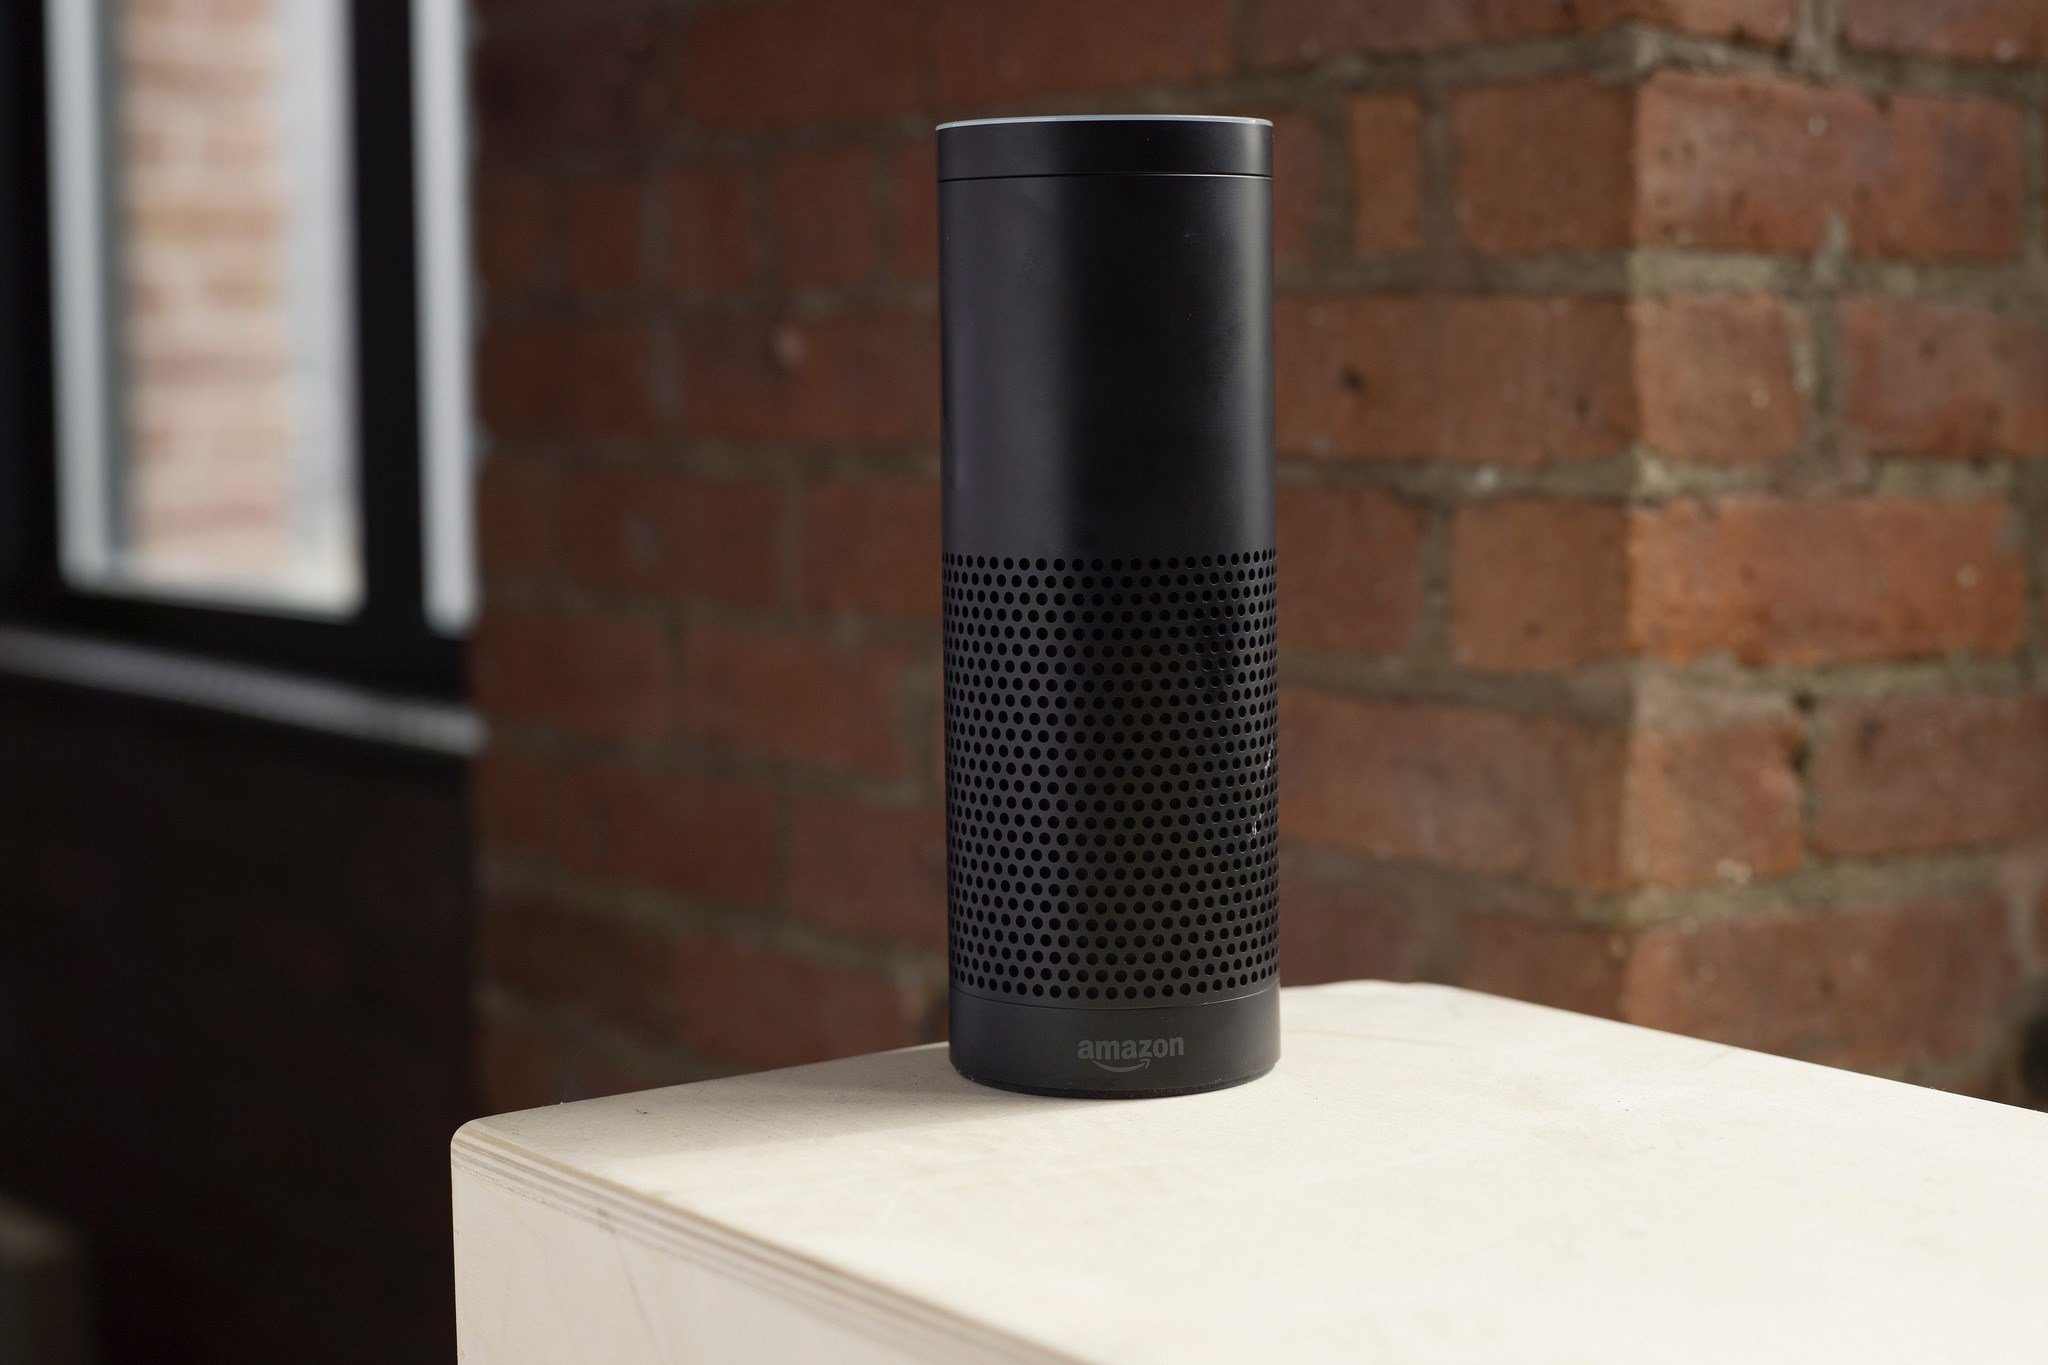 Voice assistant Amazon gave conversation to a third party